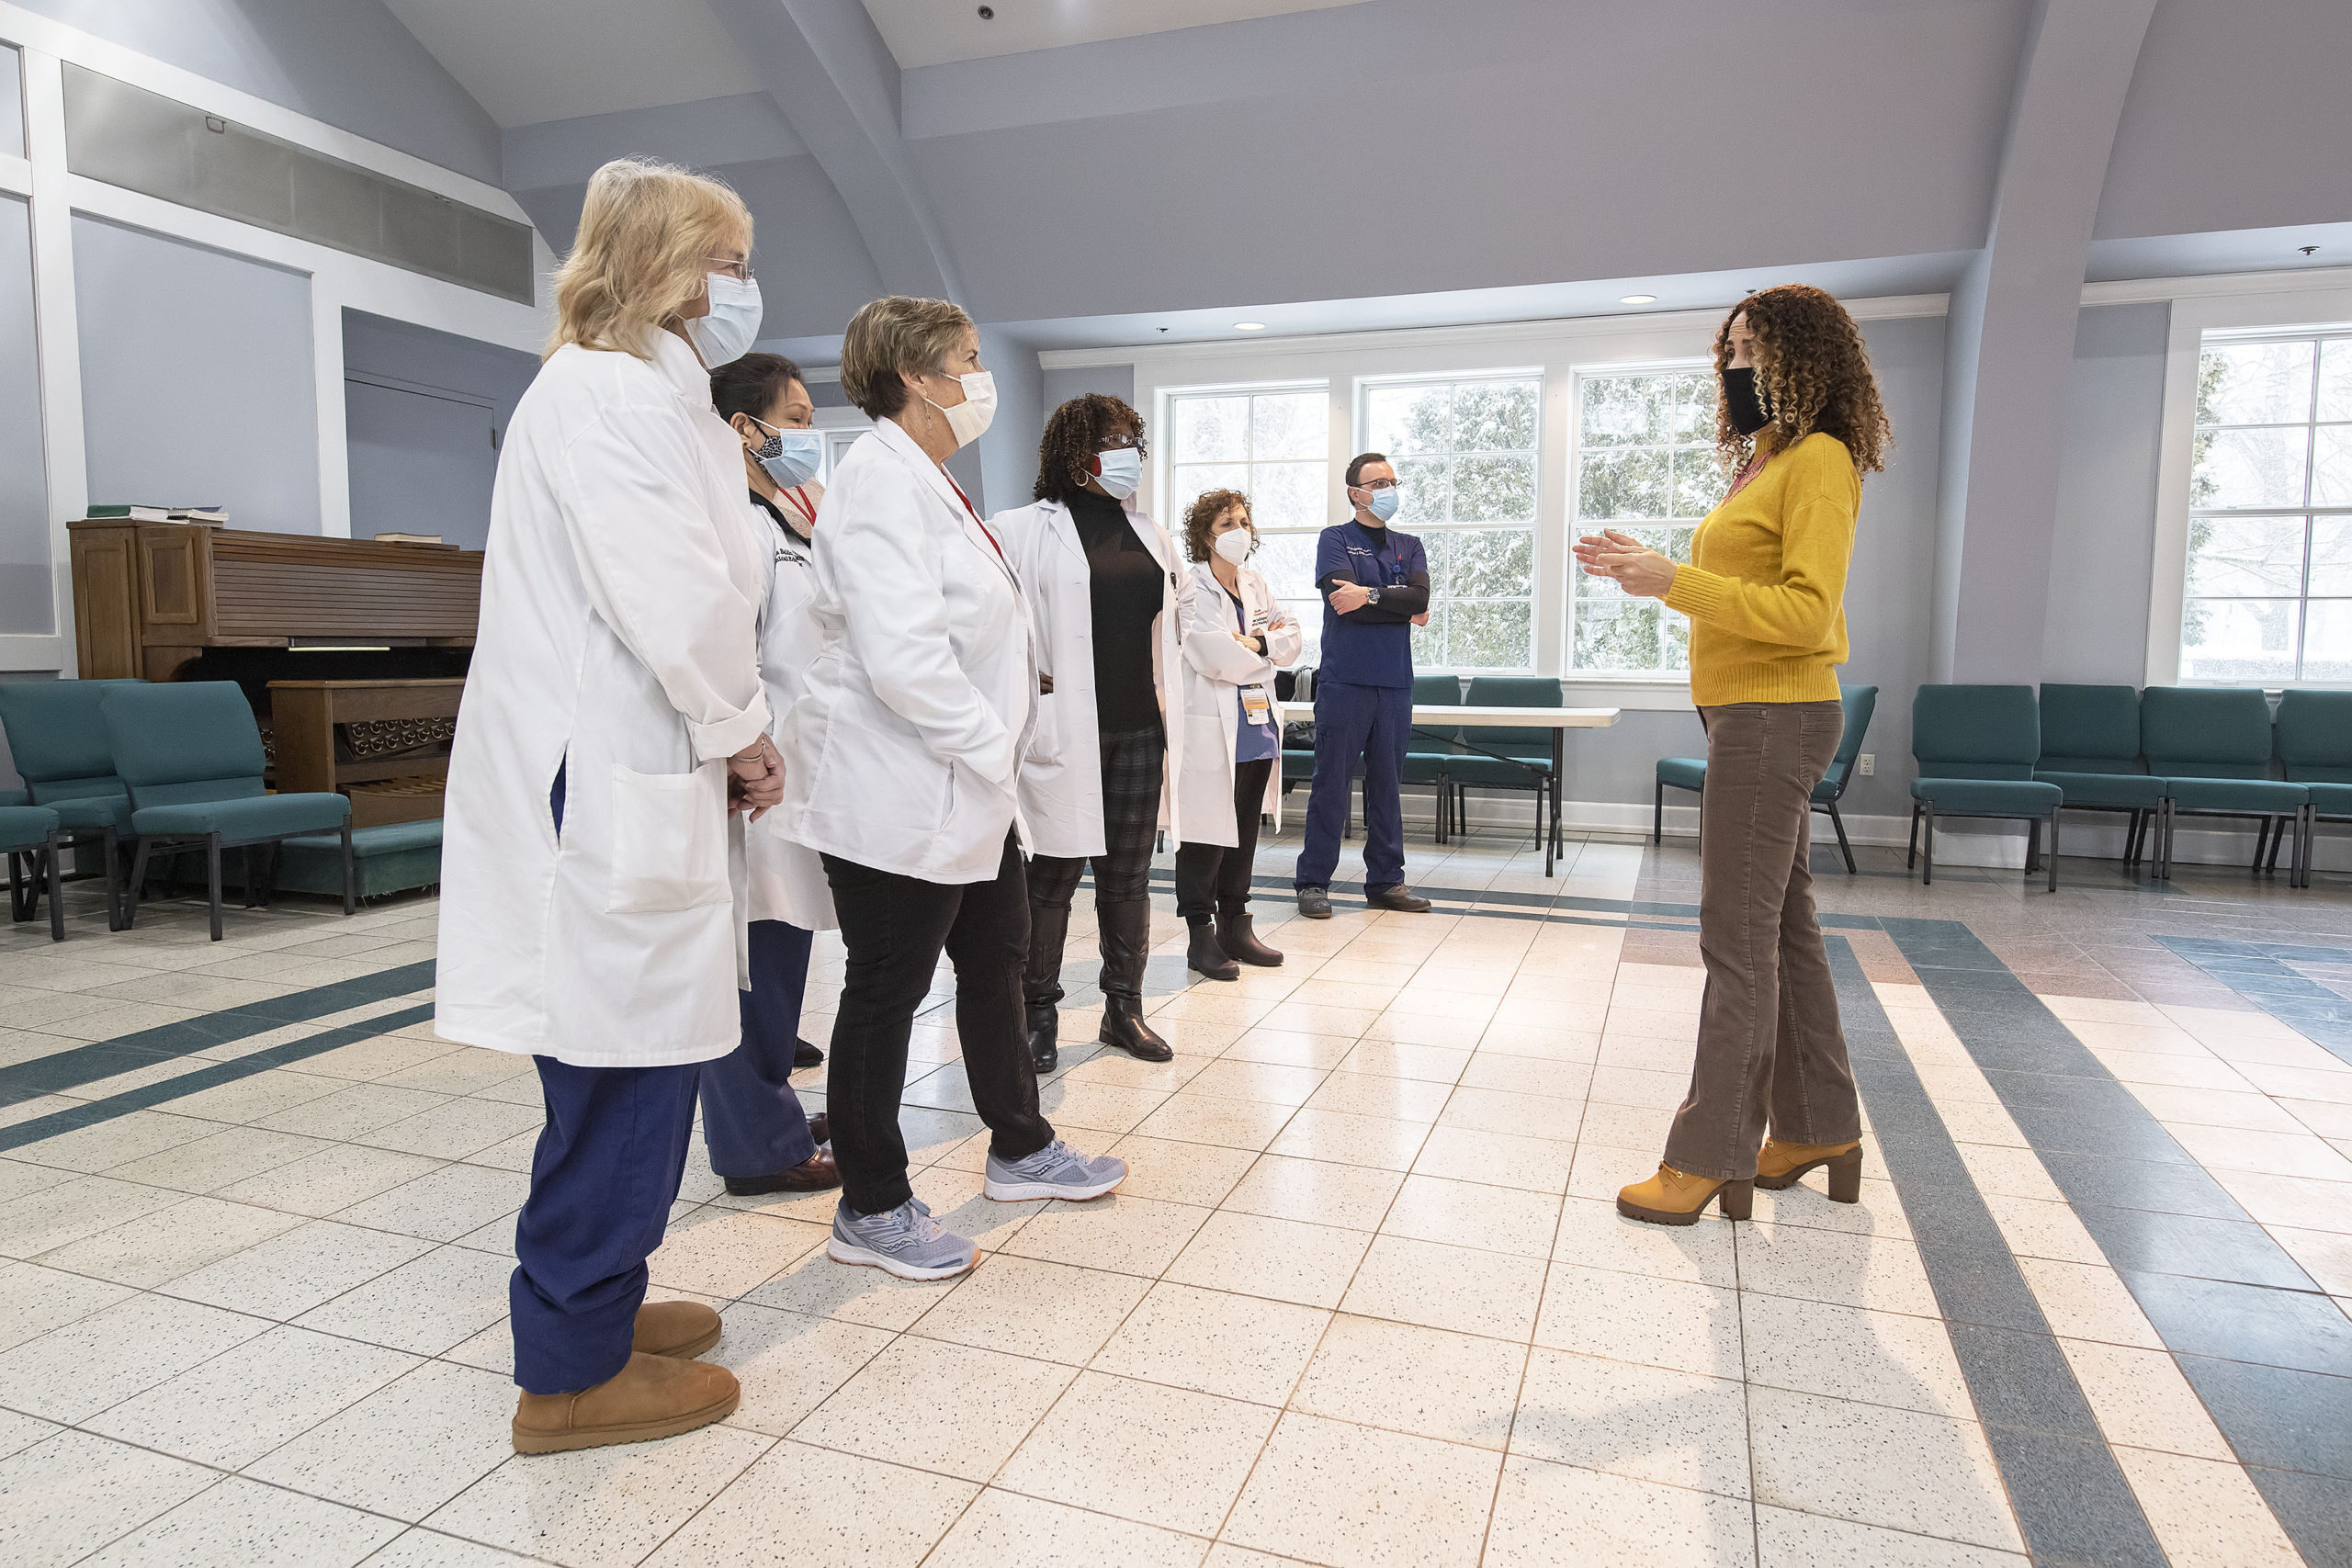 OLA  (Organización Latino-Americana) Executive Director Minerva Perez consults with Stony Brook Hospital nursing staff prior to the opening of a COVID-19 vaccine POD (Pop Up Dispensary) in the Ryan Dempsey Parrish Hall of the Most Holy Trinity Church in East Hampton on Friday.       MICHAEL HELLER